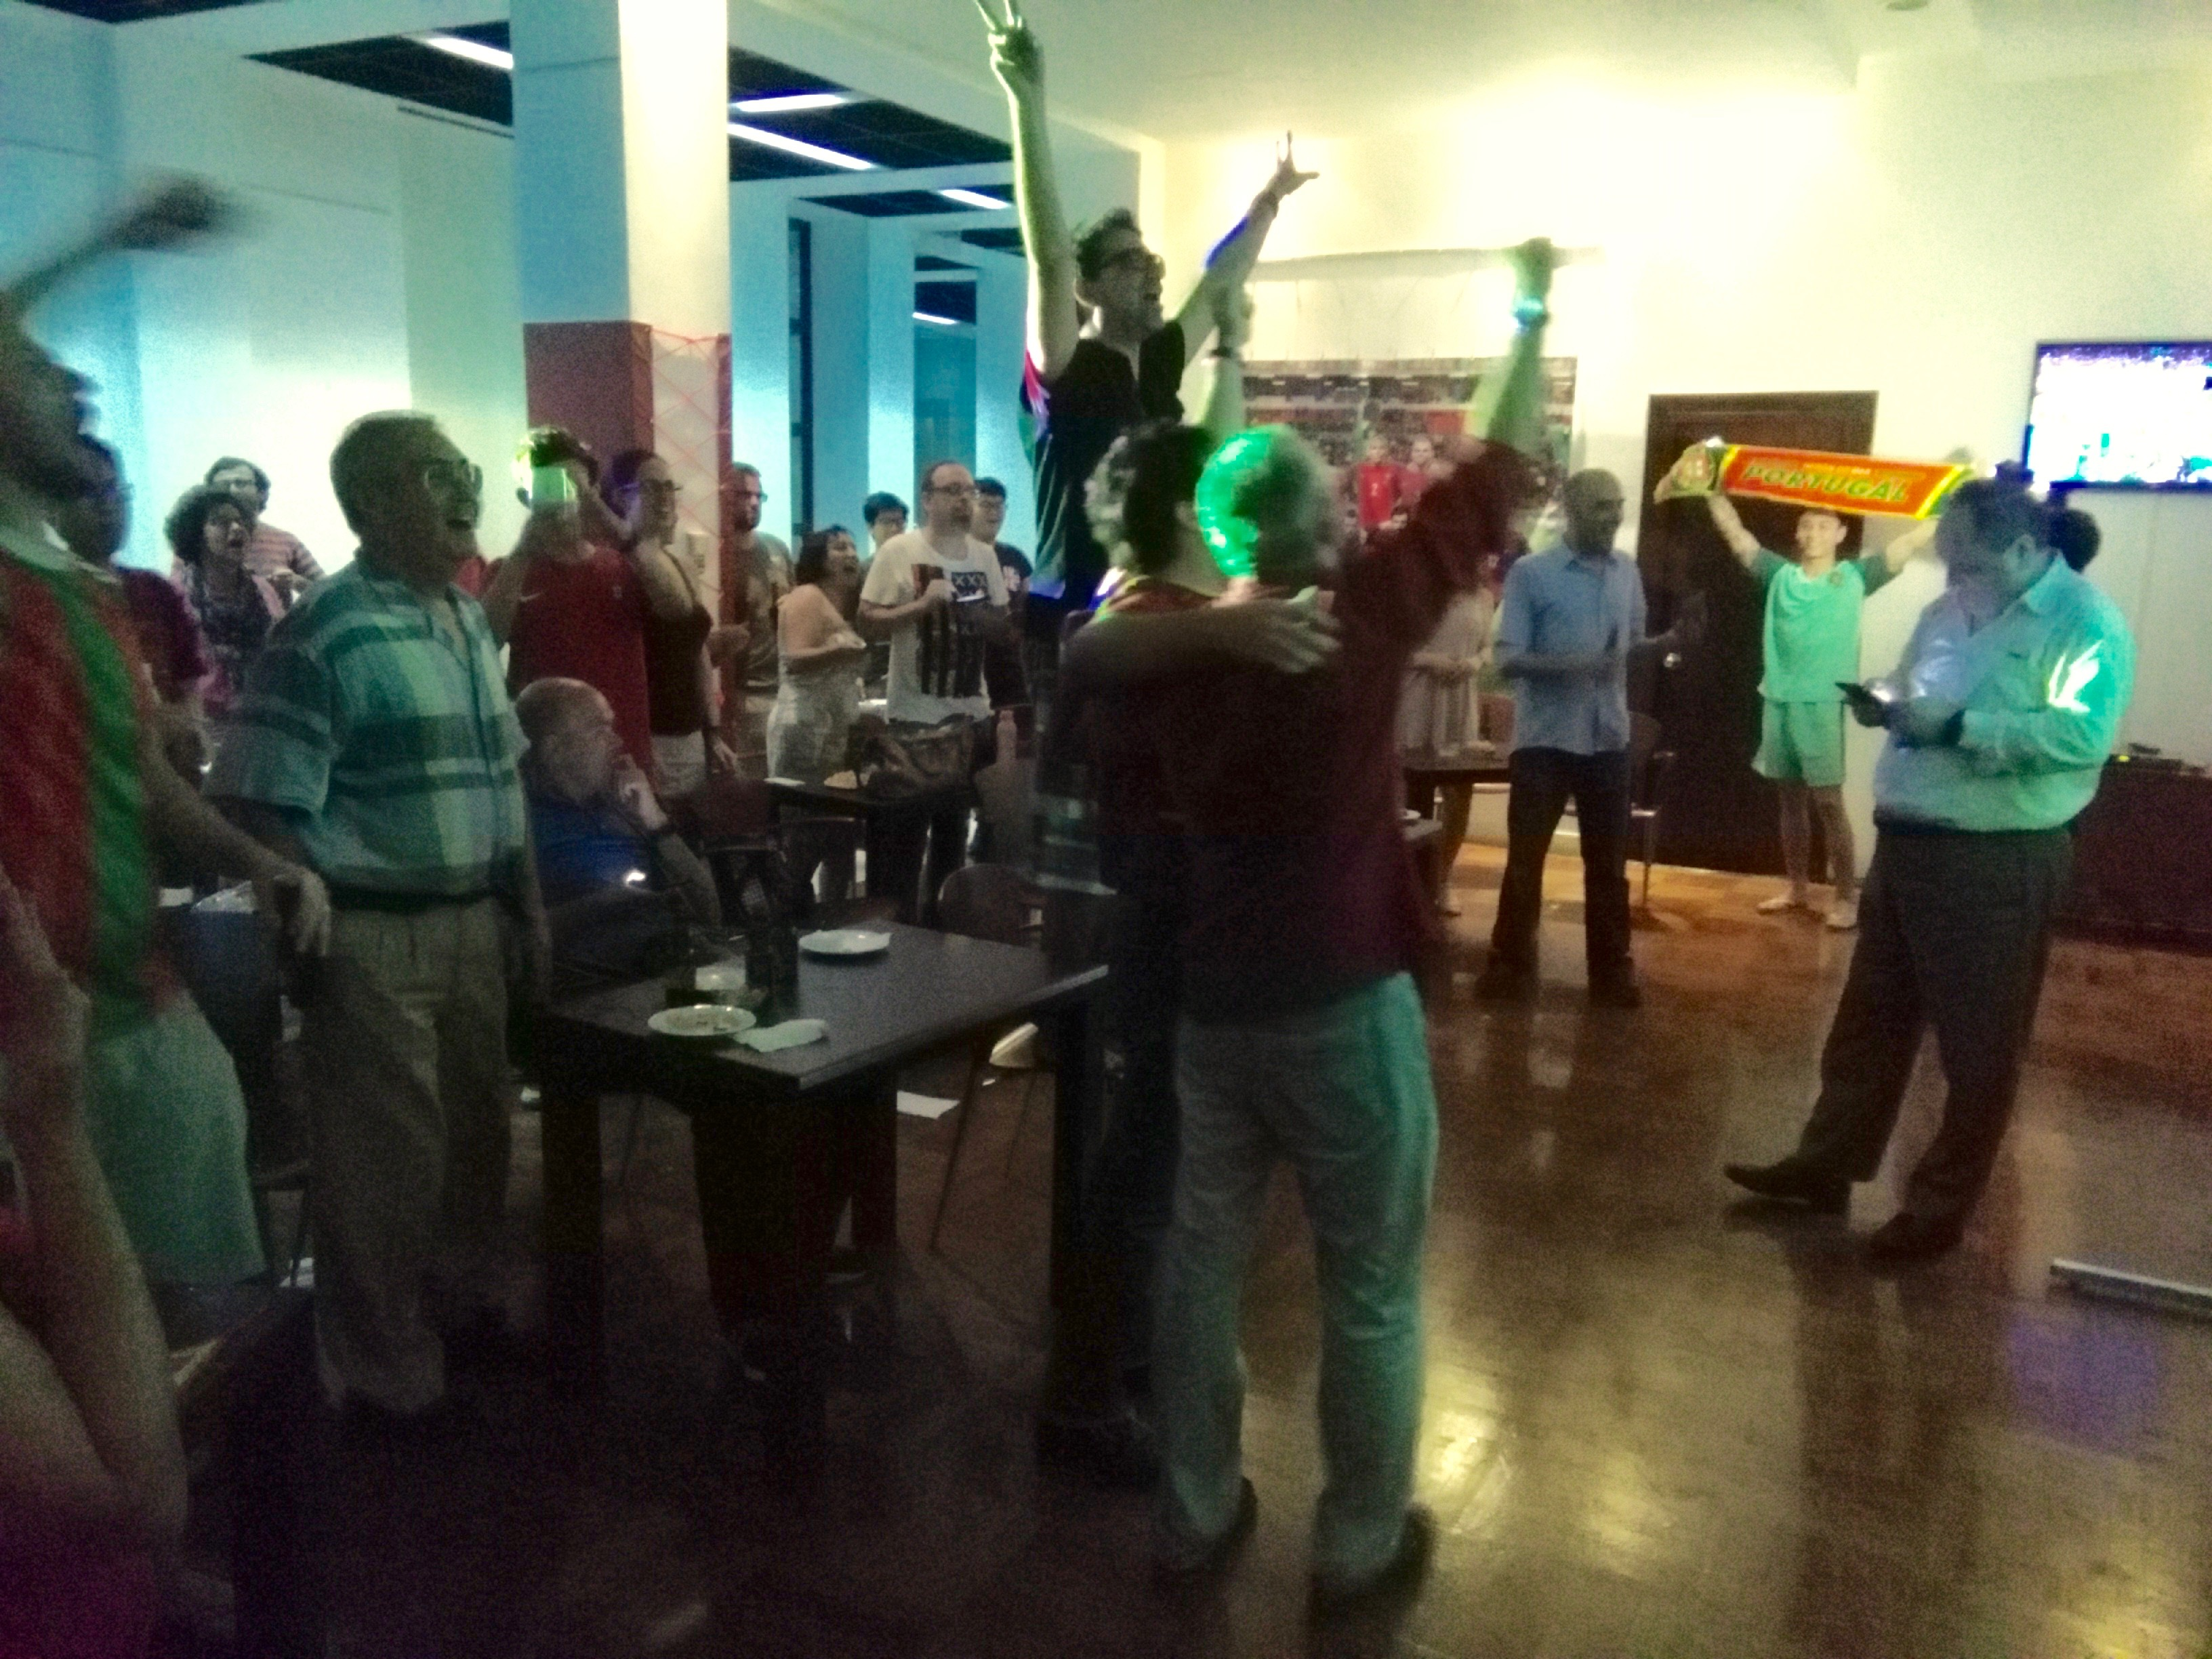 Fans of Portugal in Macau react as they watch a televised broadcast of their team defeating France in Euro 2016